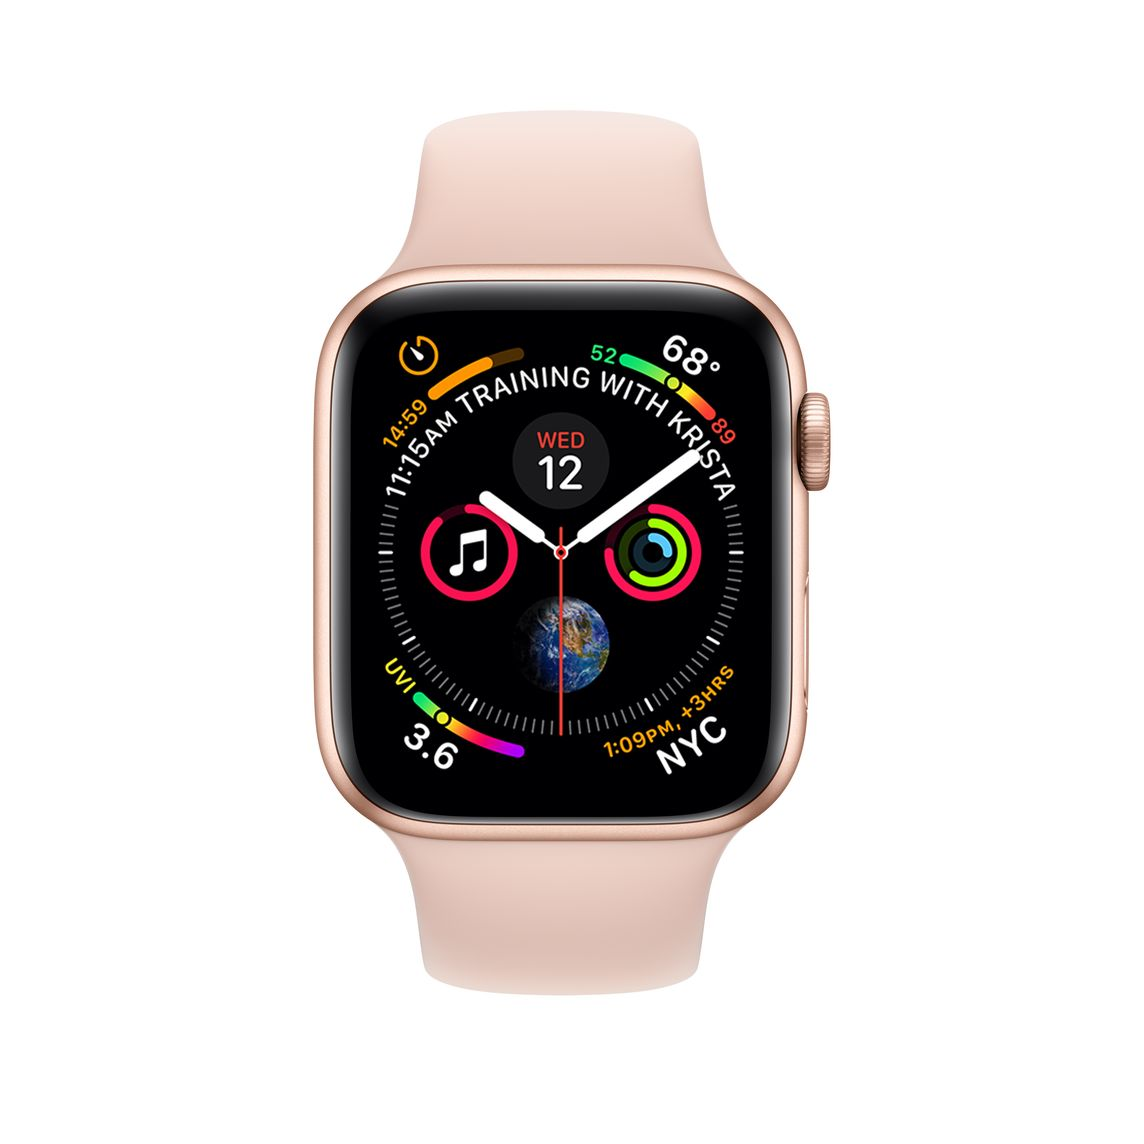 Refurbished Apple Watch Series 4 Gps 40mm Gold Aluminum Case With Pink Sand Sport Band Apple